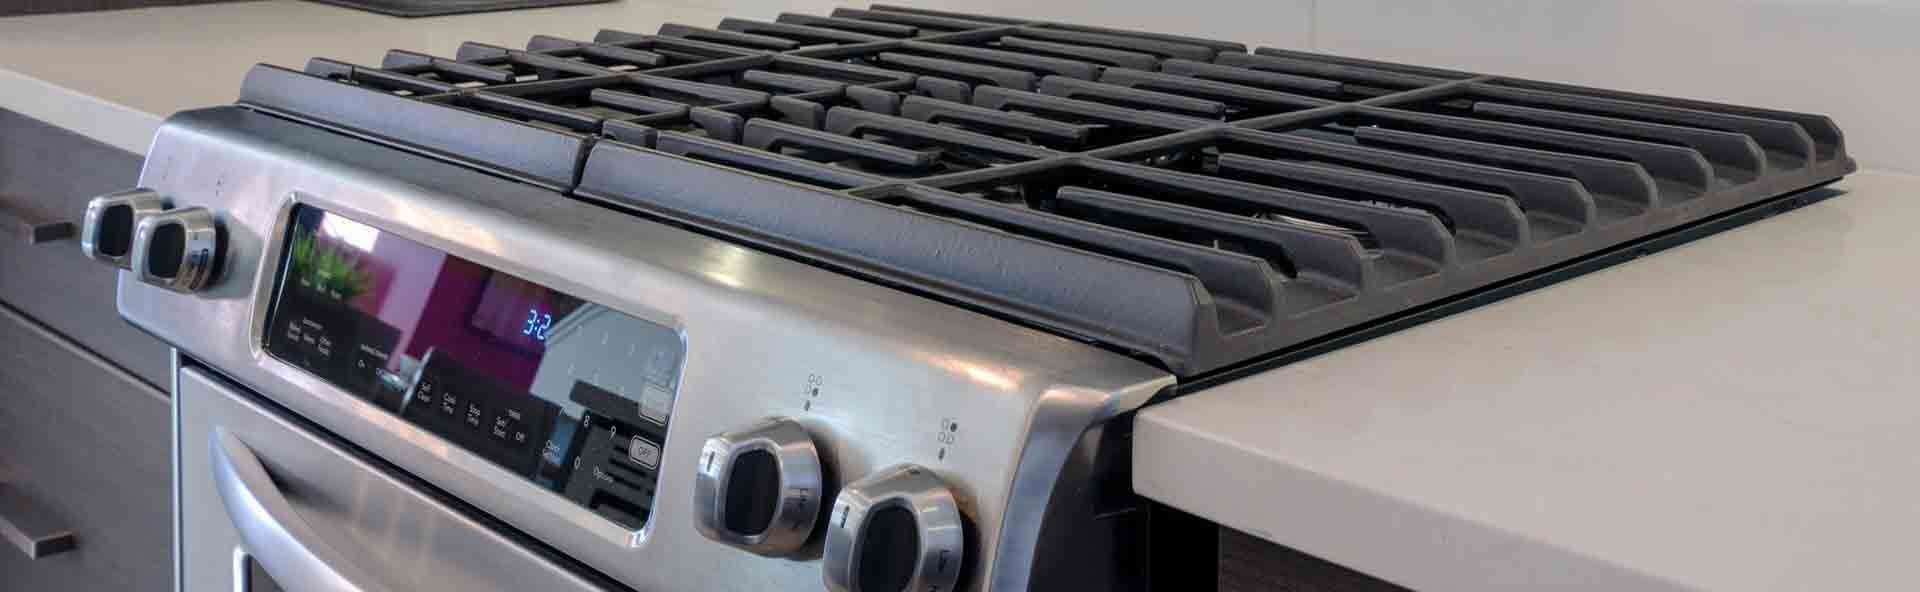 Professional Oven Cleaning Halifax